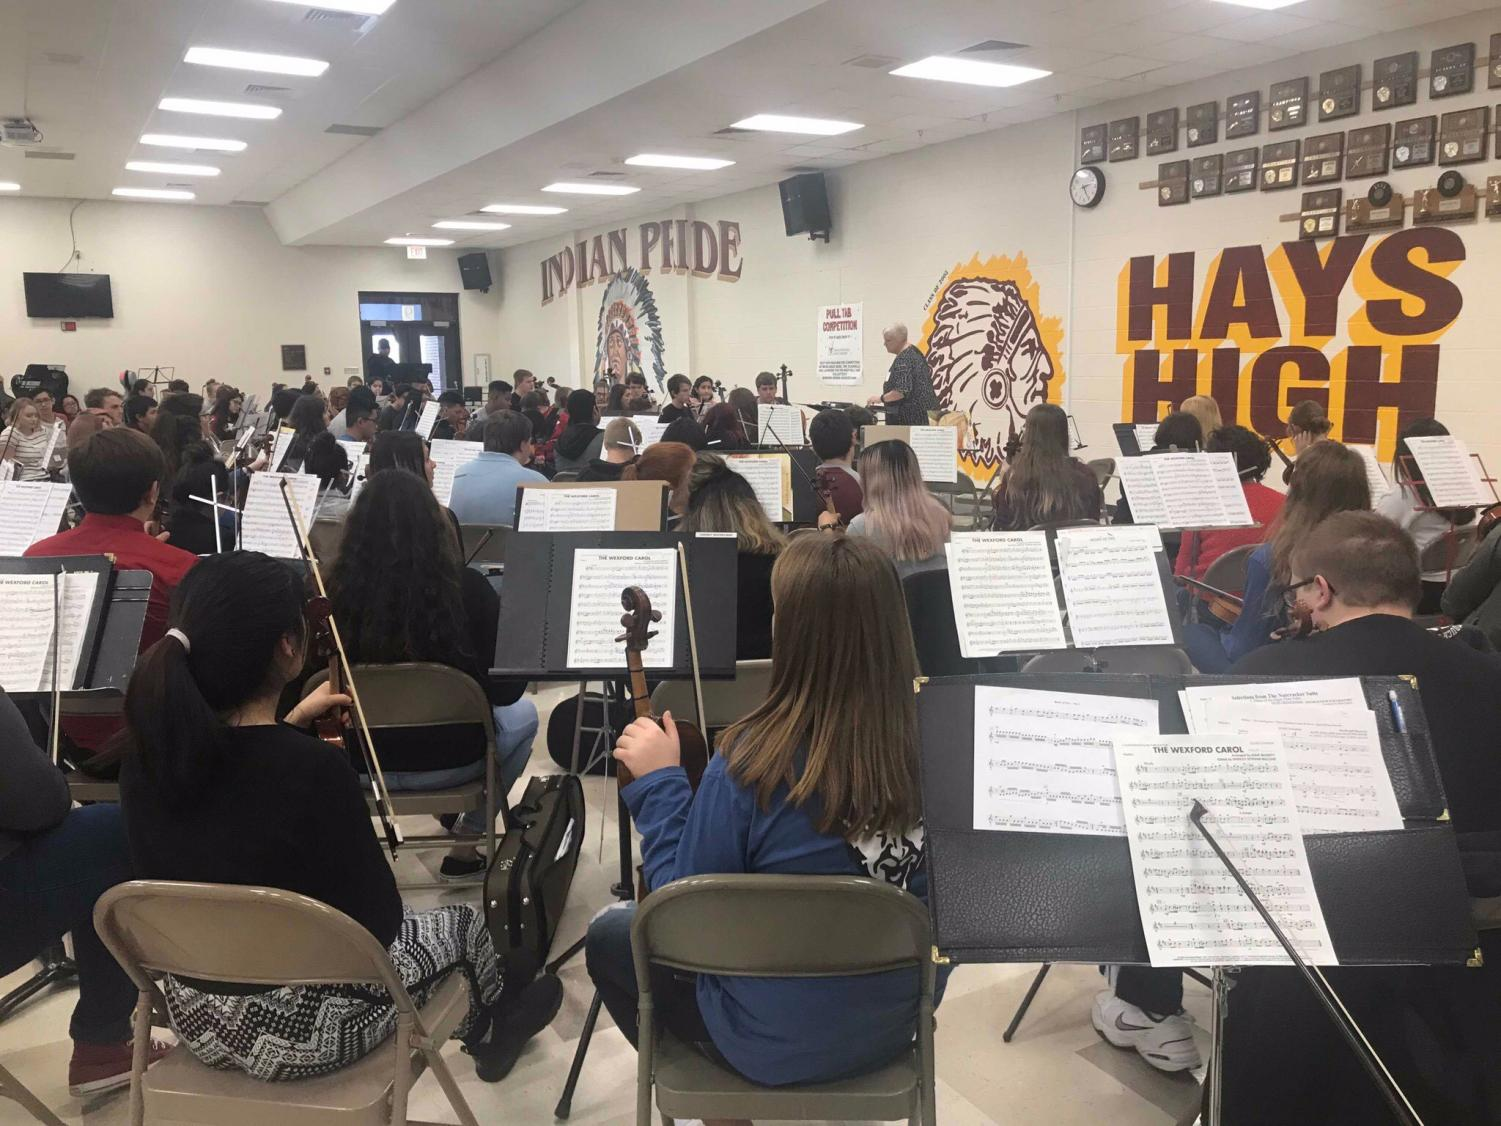 High school orchestra A during their first day of practice.